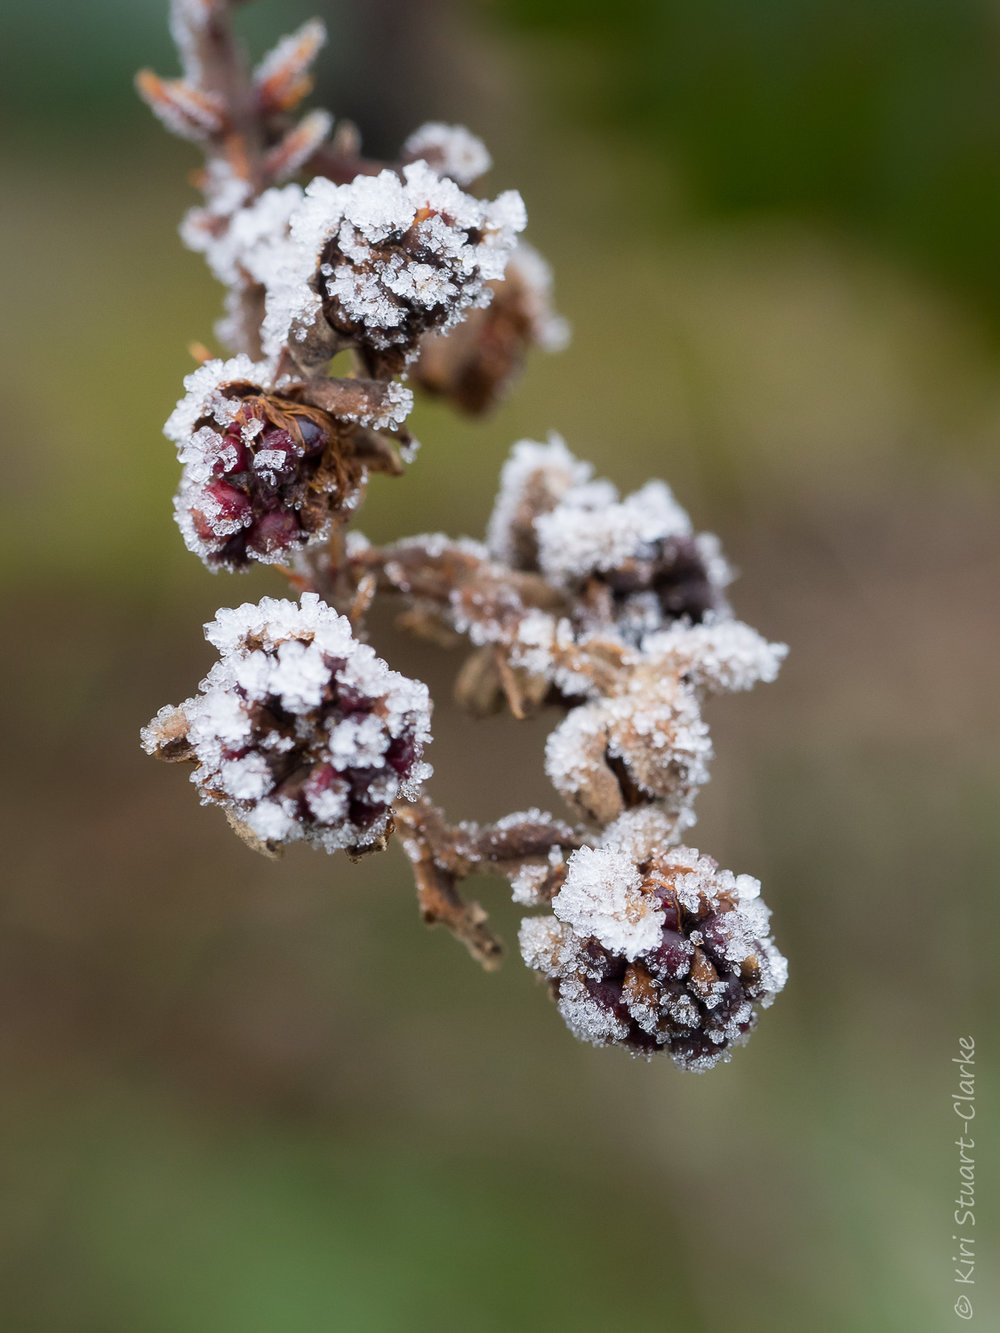 Frost crystals on a cluster of blackberries